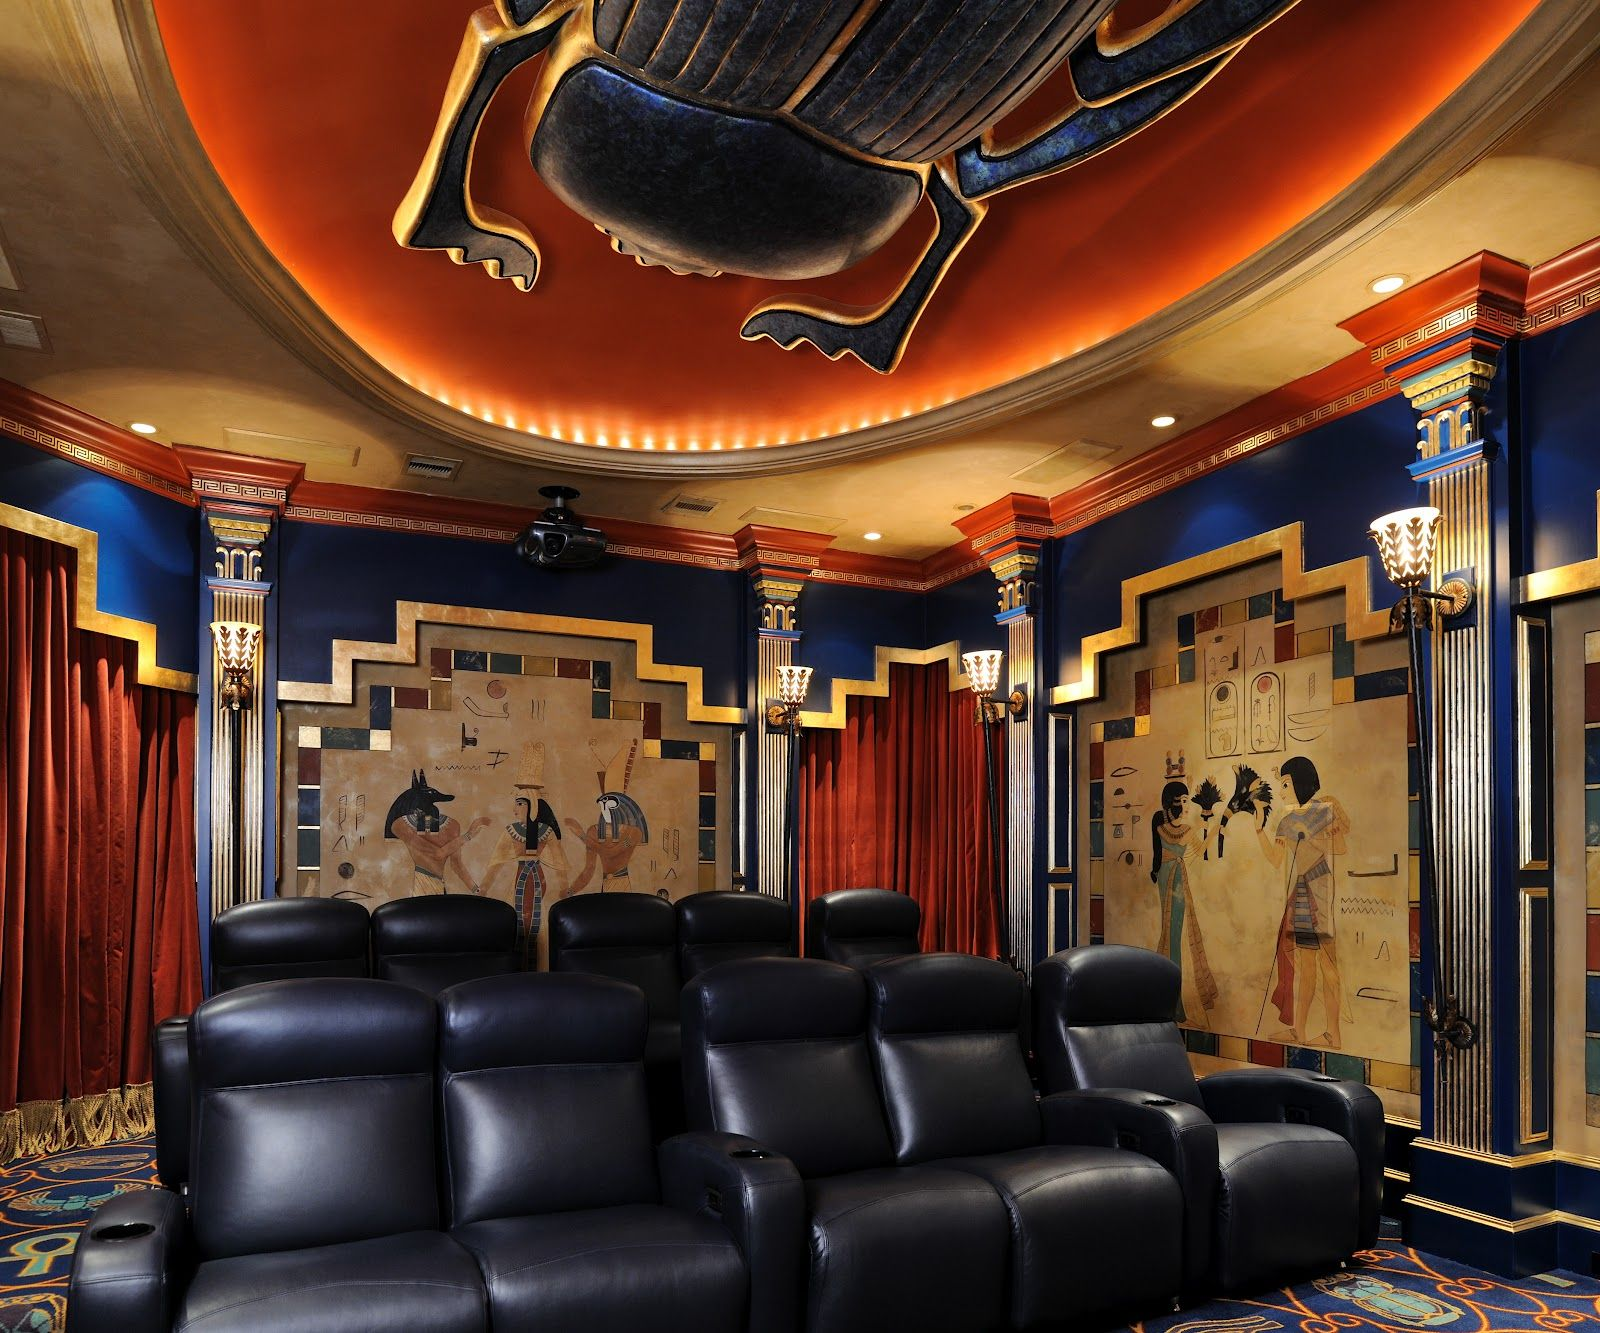 Modern Deco With Egyptian Influence